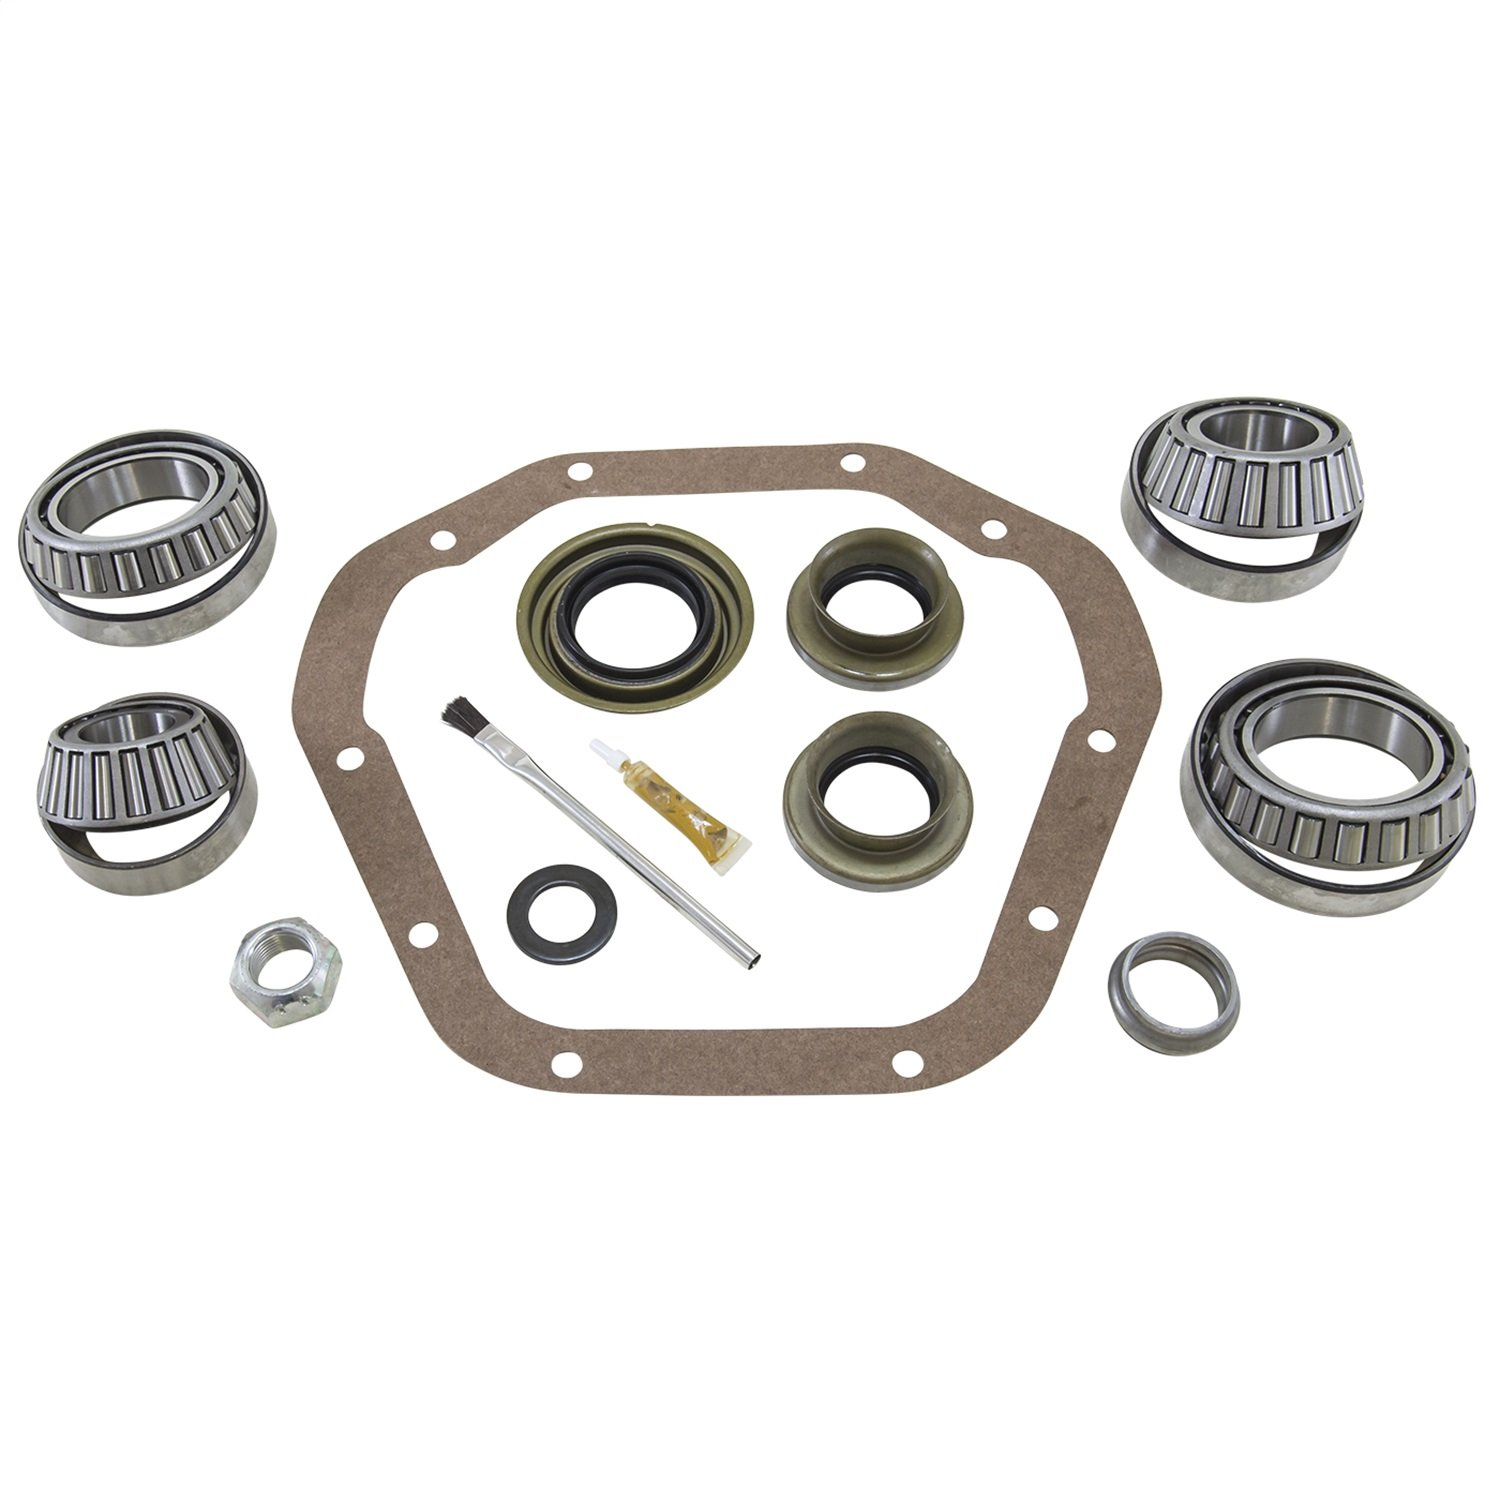 USA Standard Gear (ZBKD60-R) Bearing Kit for Dana 60 Rear Differential by USA Standard Gear